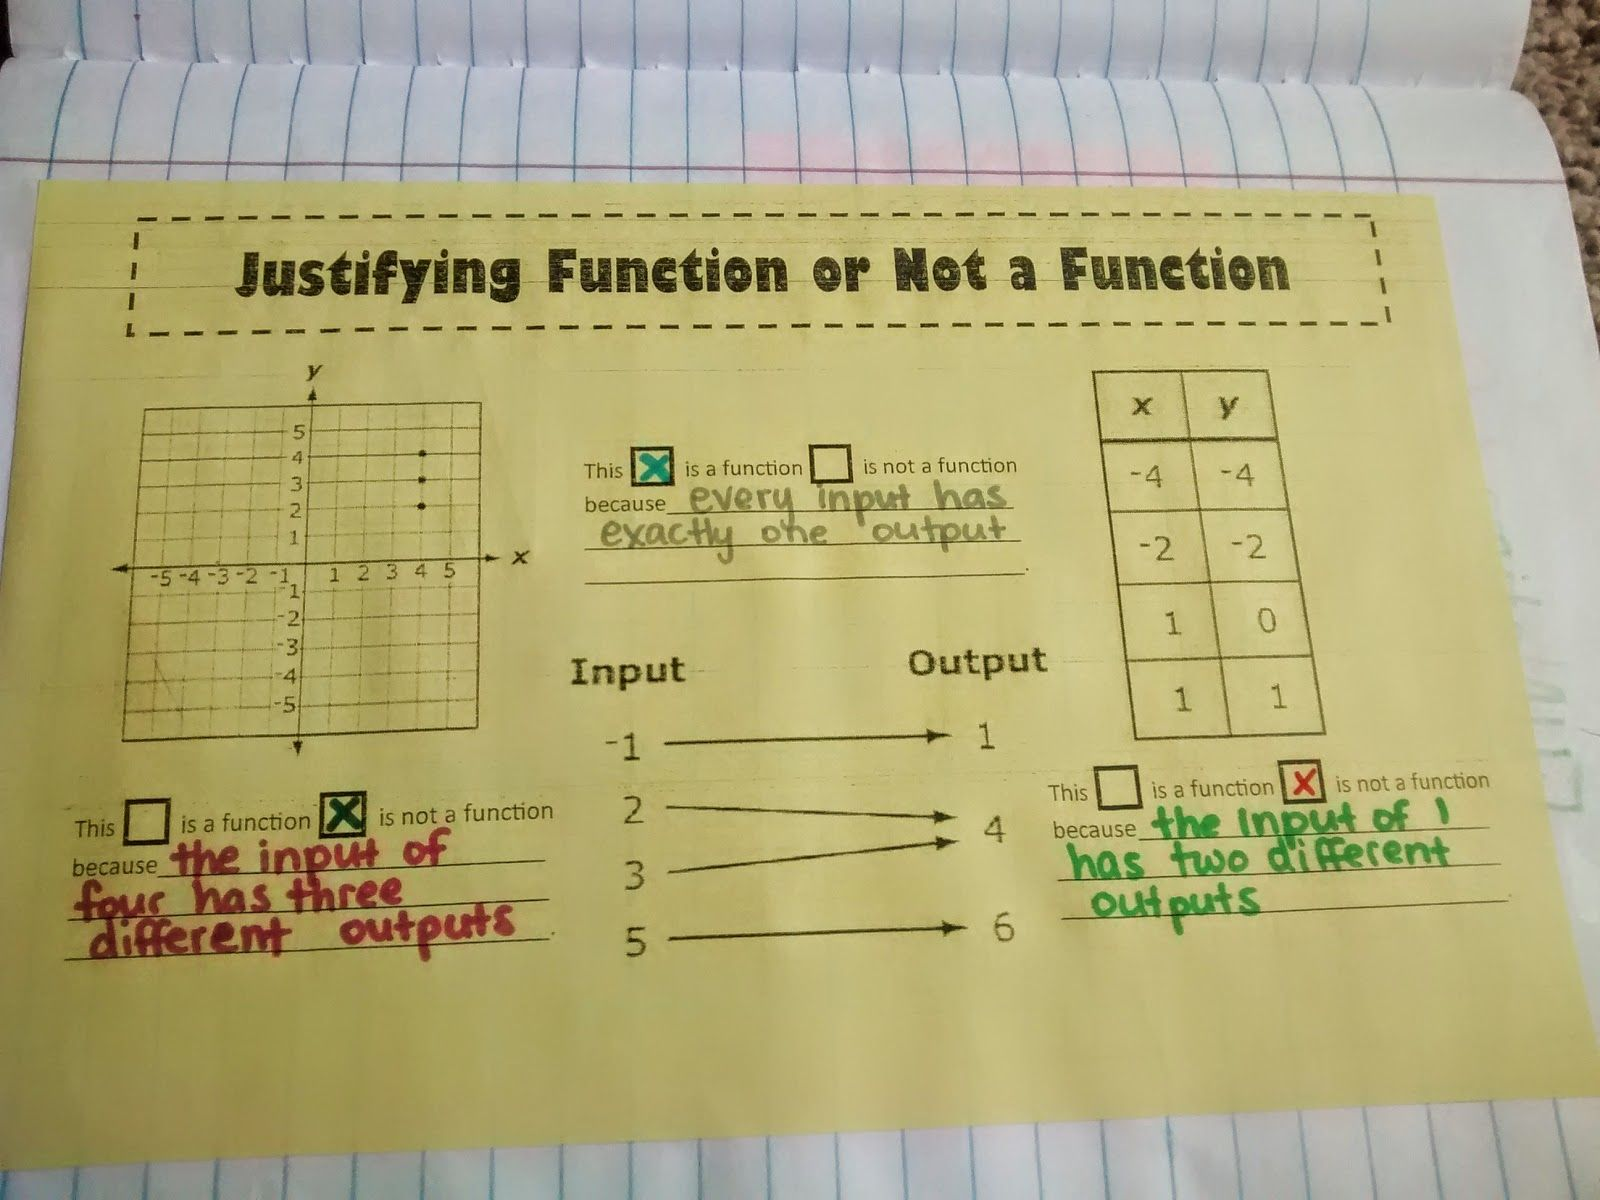 Justifying Function Or Not A Function